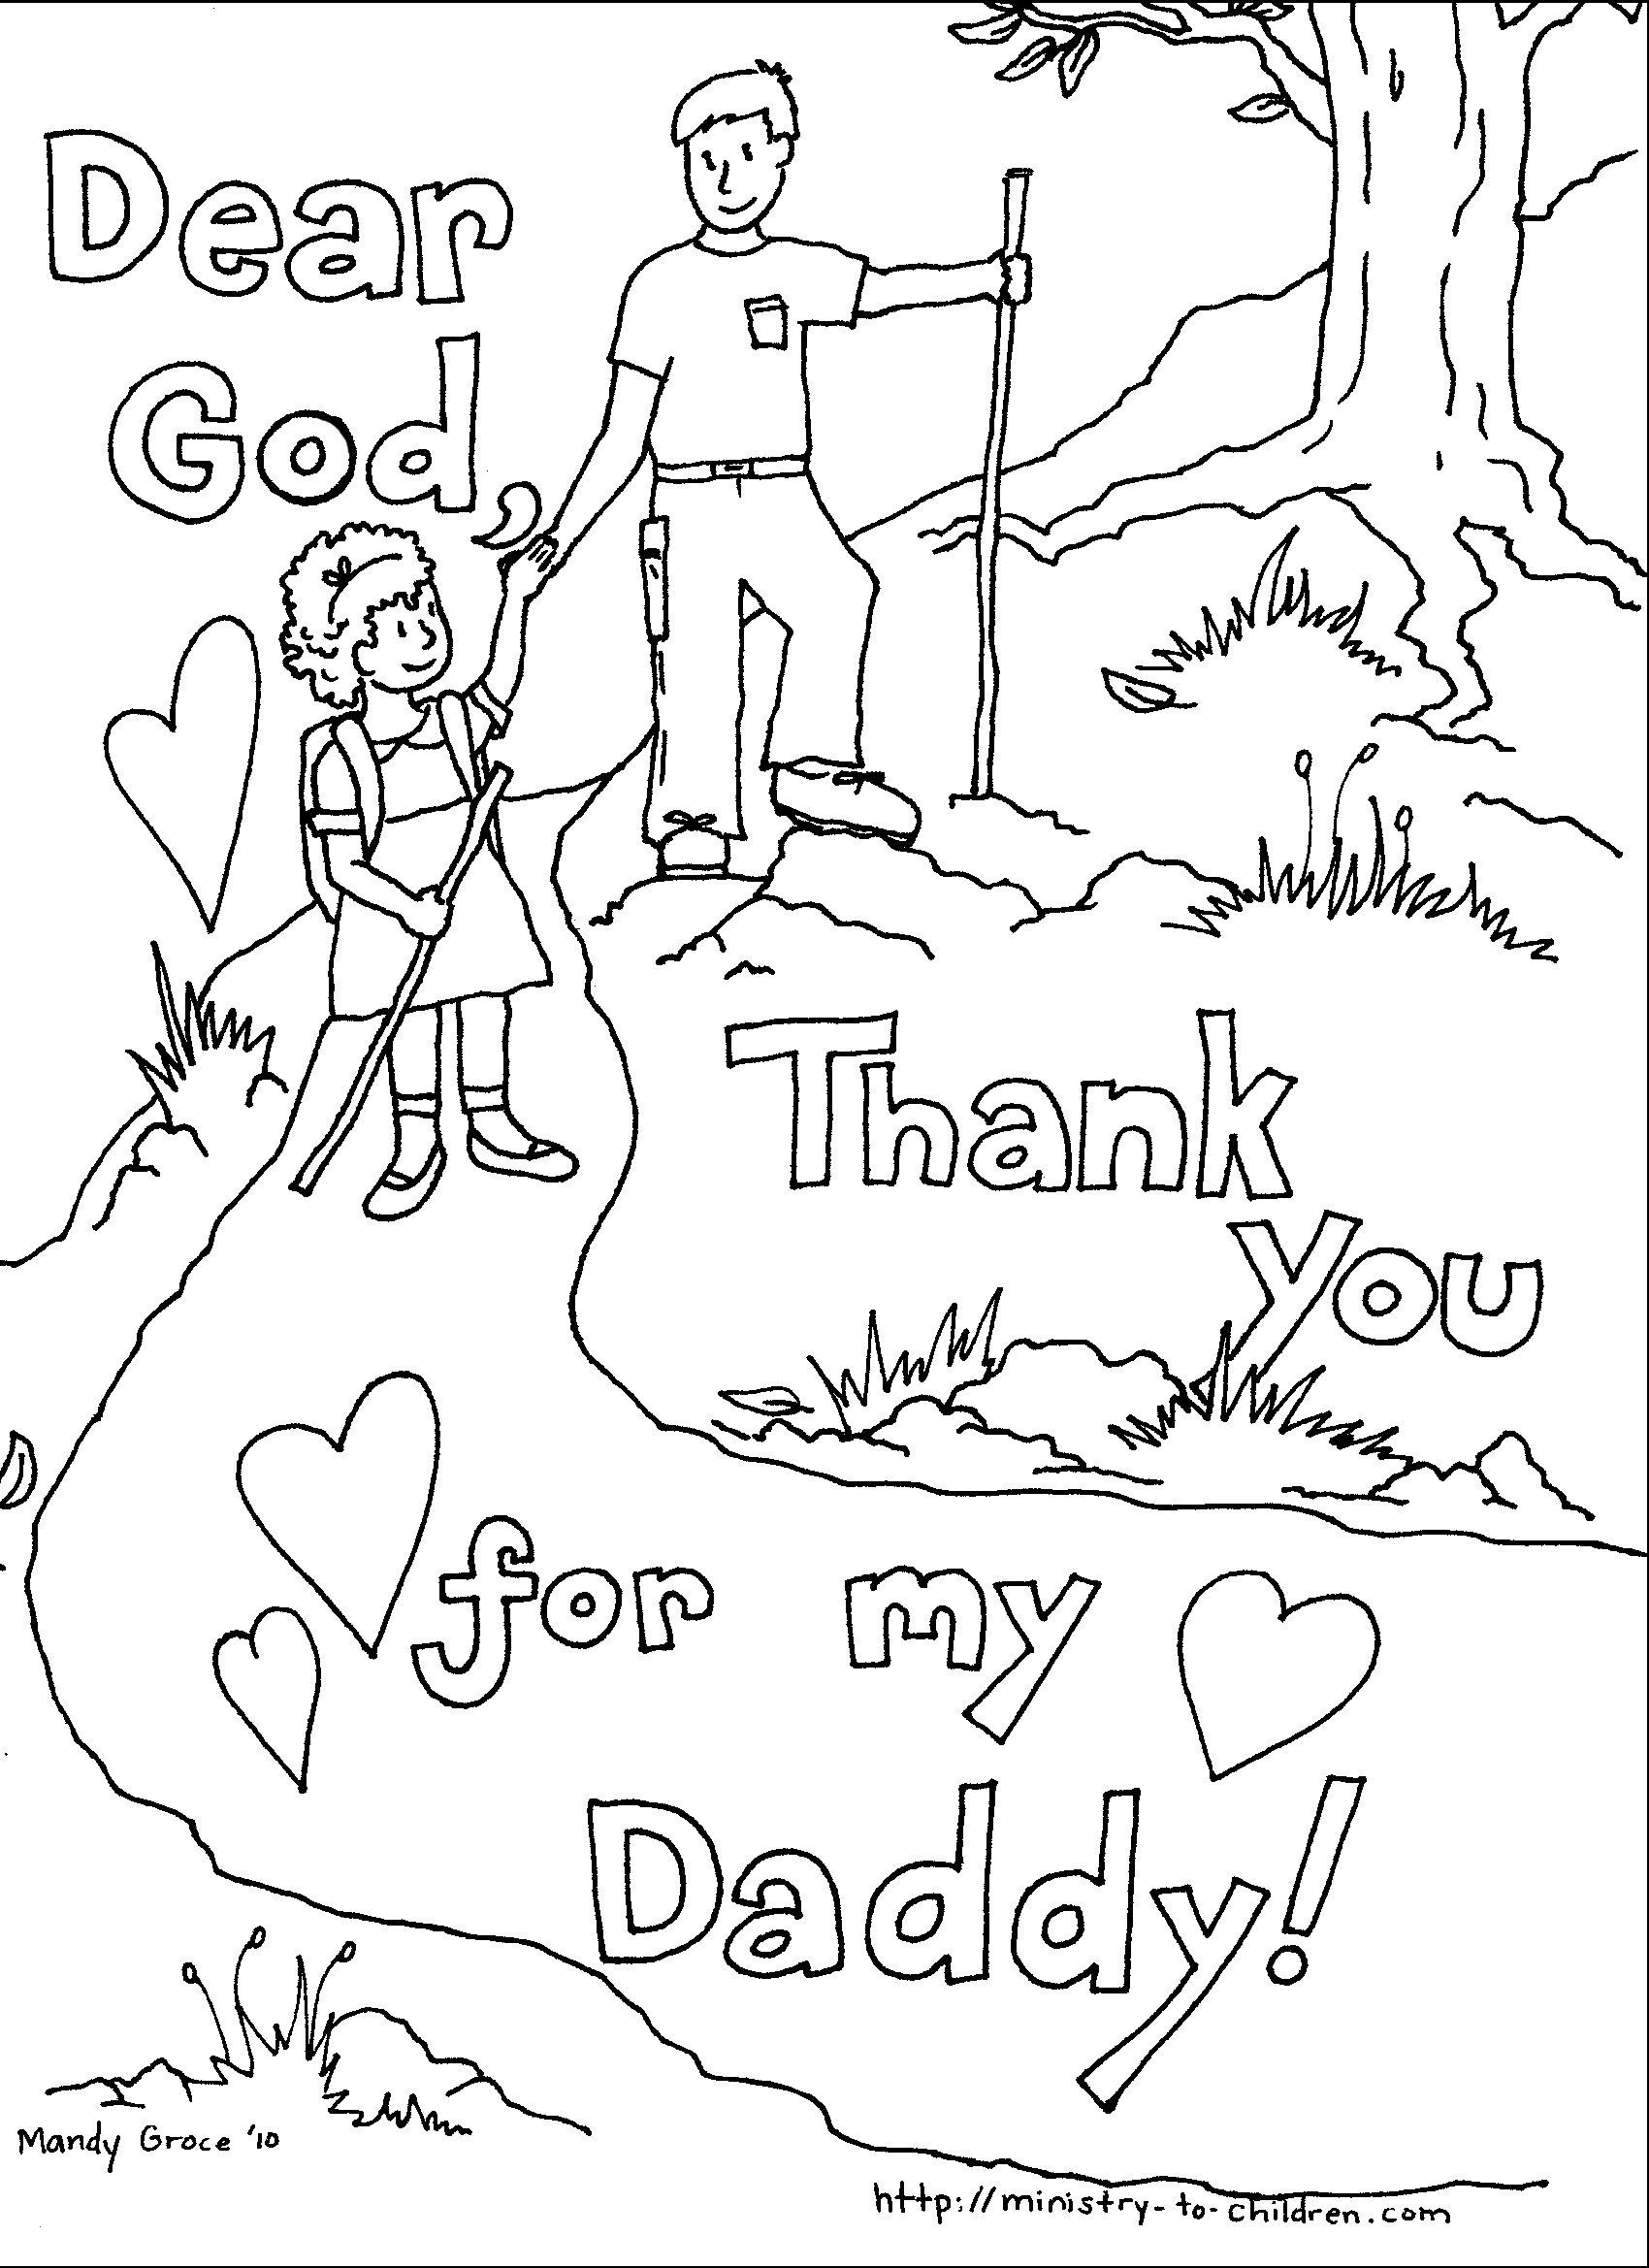 sodom and gomorrah coloring pages Download-Rahab Coloring Pages sodom and Gomorrah Coloring Pages Lovely Gemütlich Days the Week 20-b